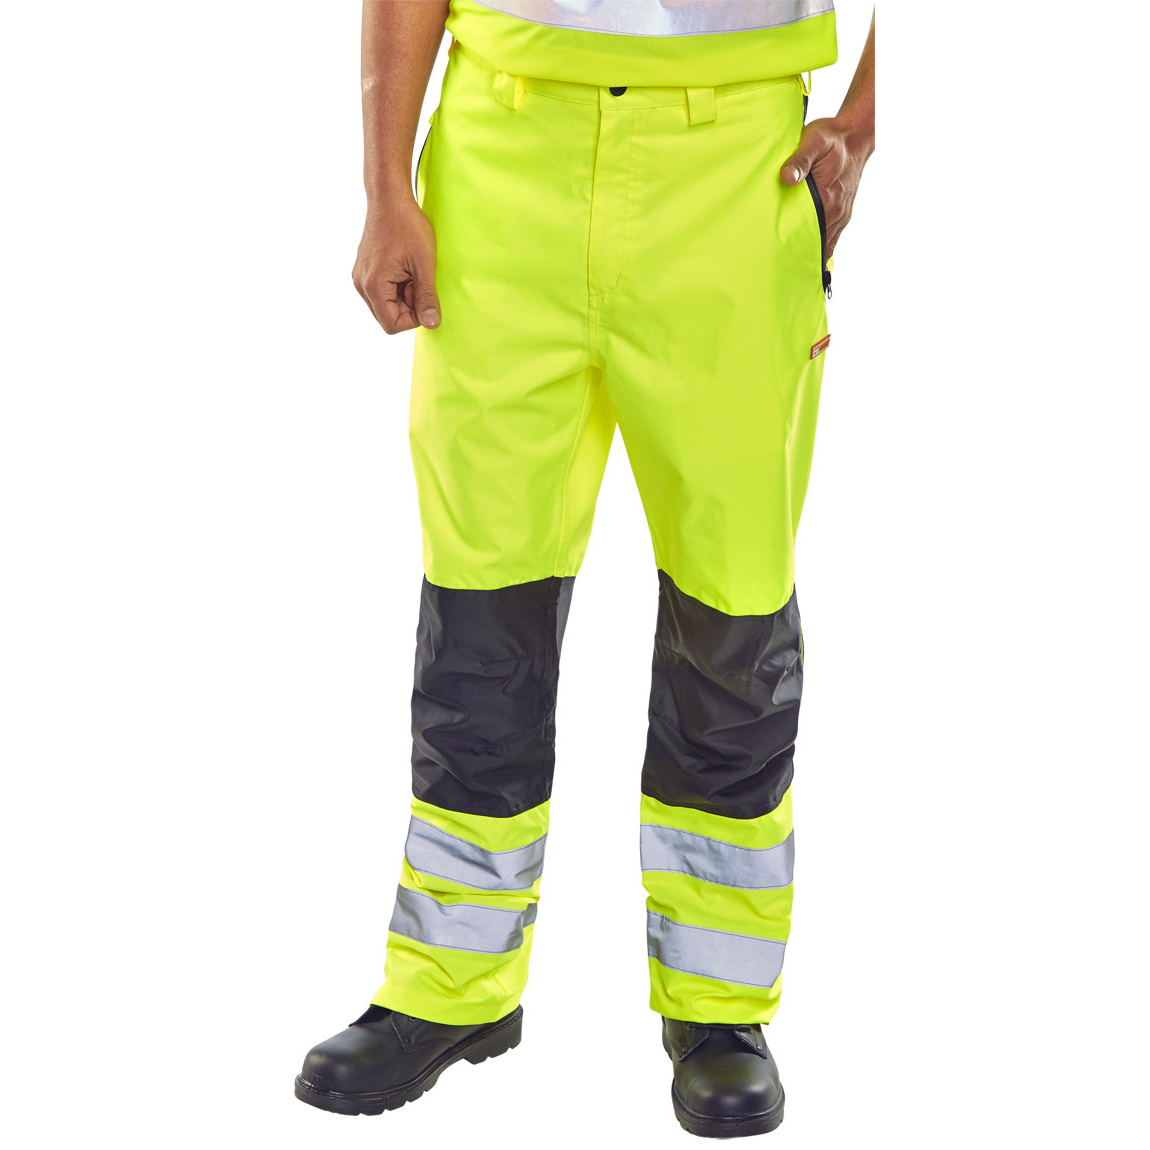 High Visibility B-Seen Contrast Trousers Hi-Vis Waterproof 2XL Saturn Yellow Ref BD85SYXXL *Up to 3 Day Leadtime*